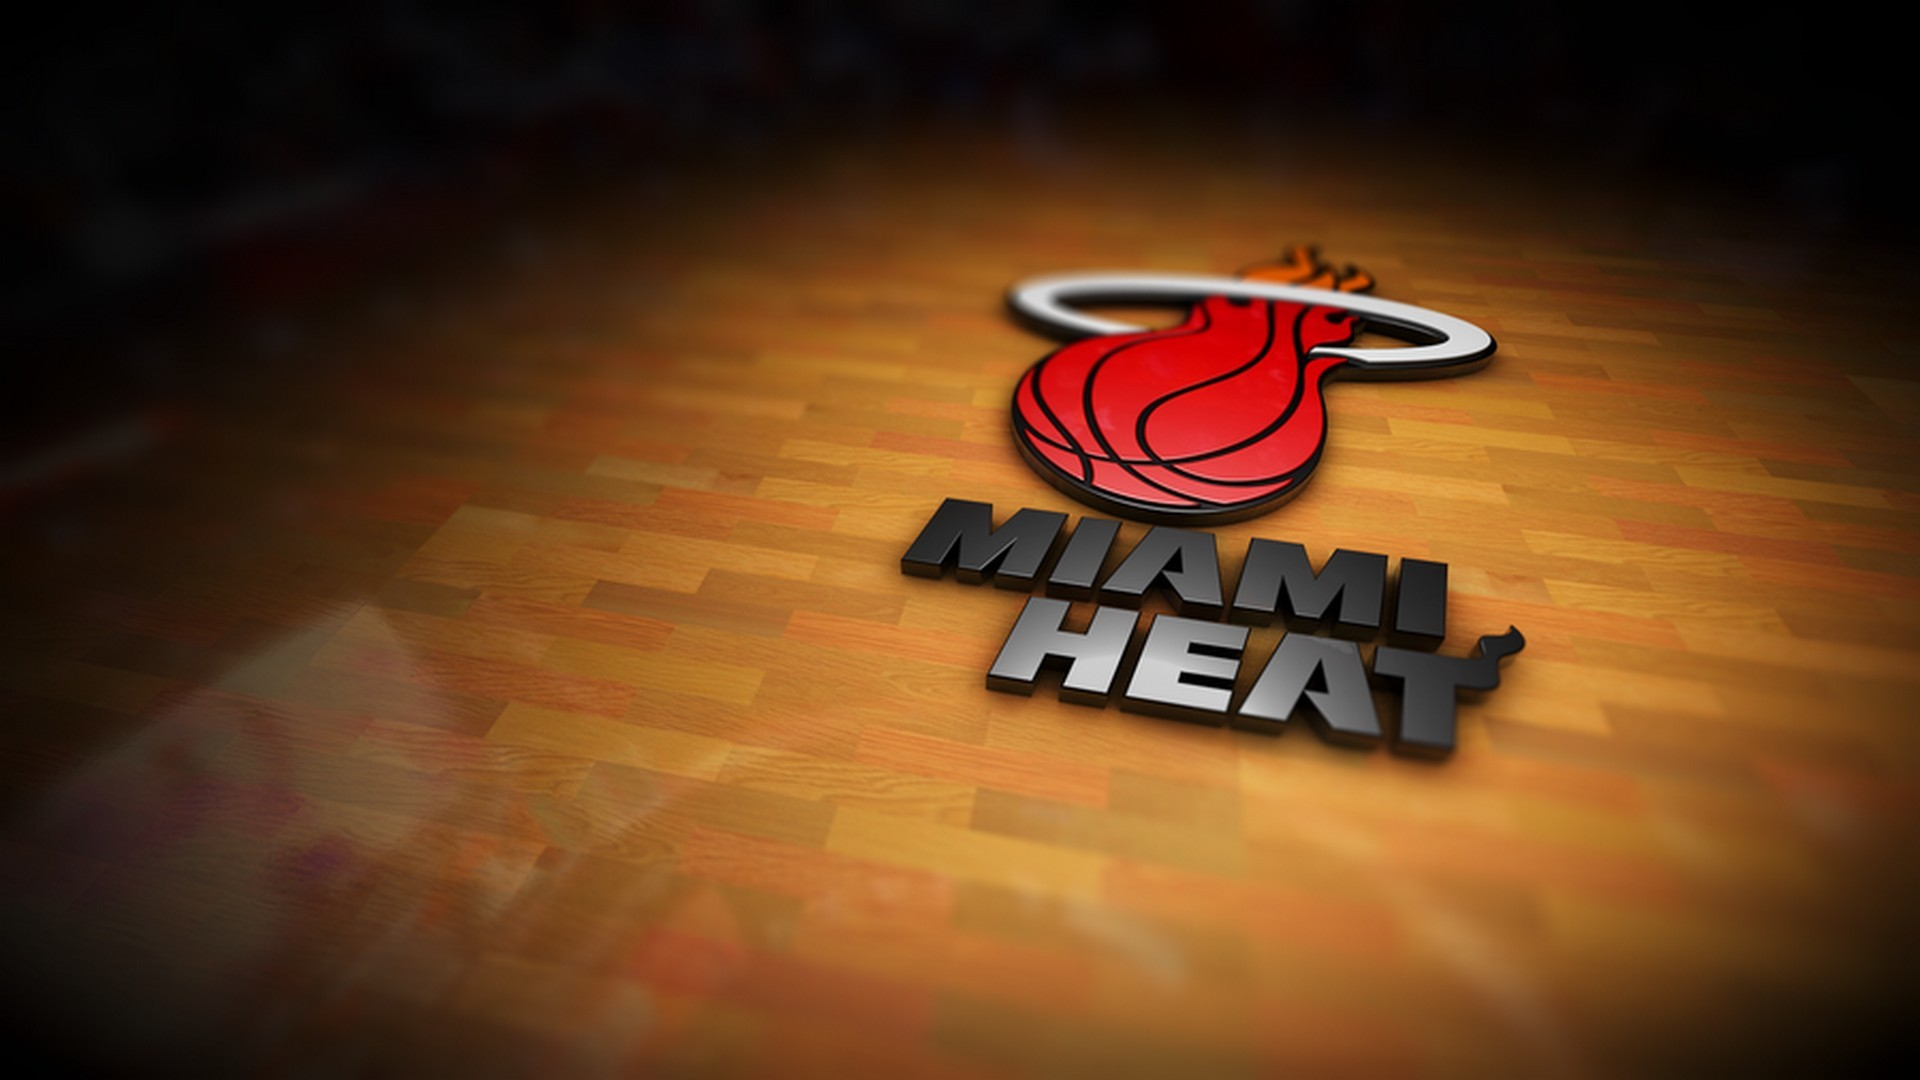 1920x1080 Miami Heat For Desktop Wallpaper with high-resolution  pixel. You  can use this